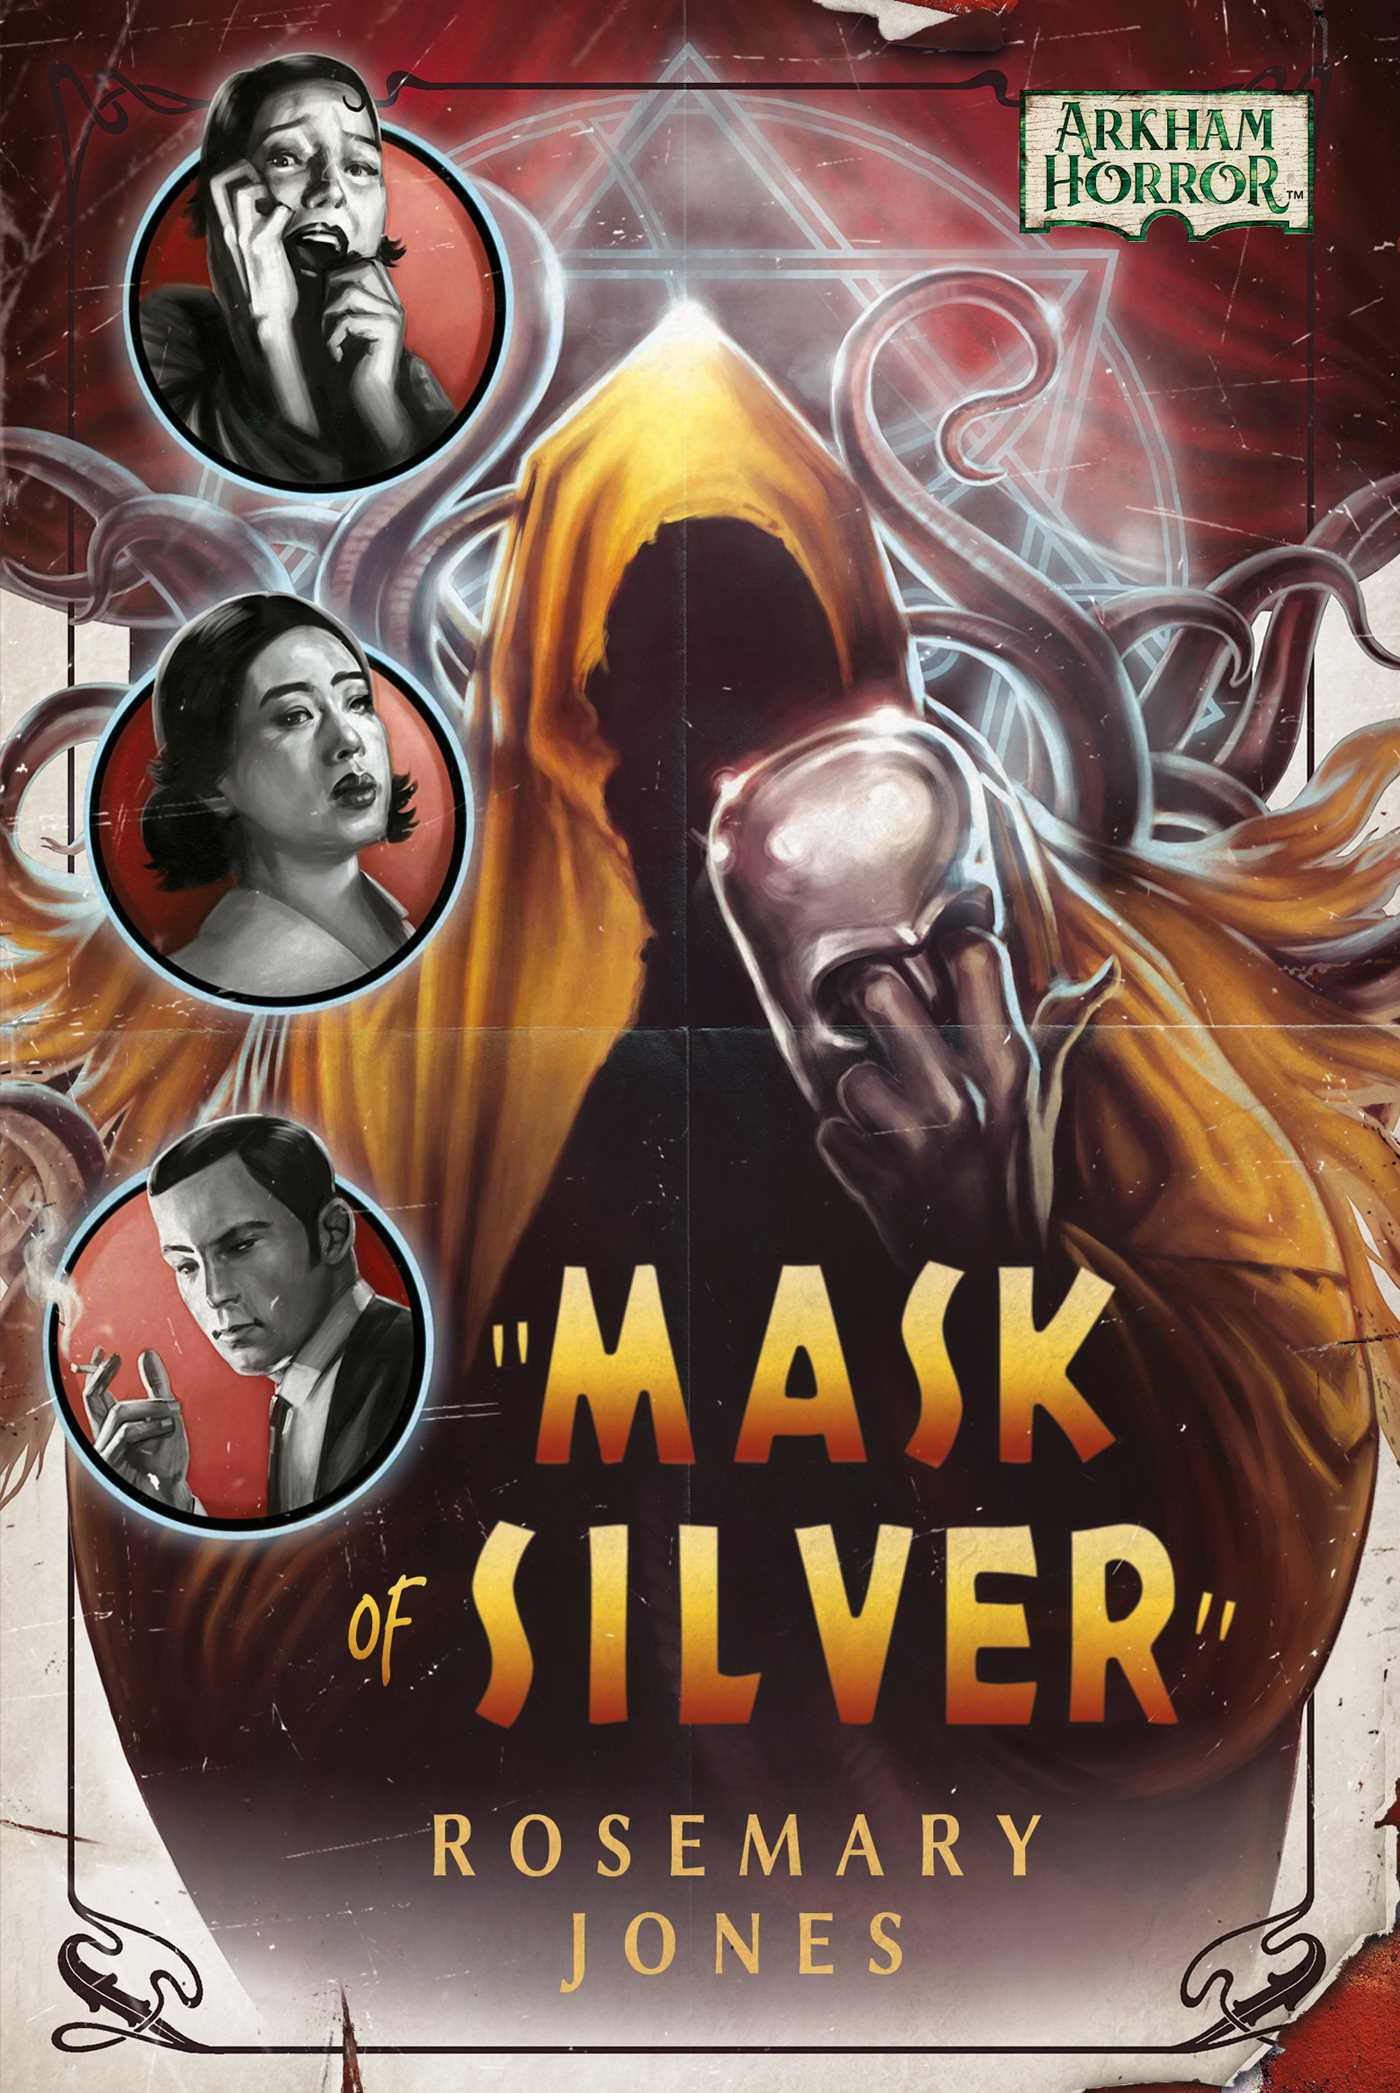 Mask of Silver